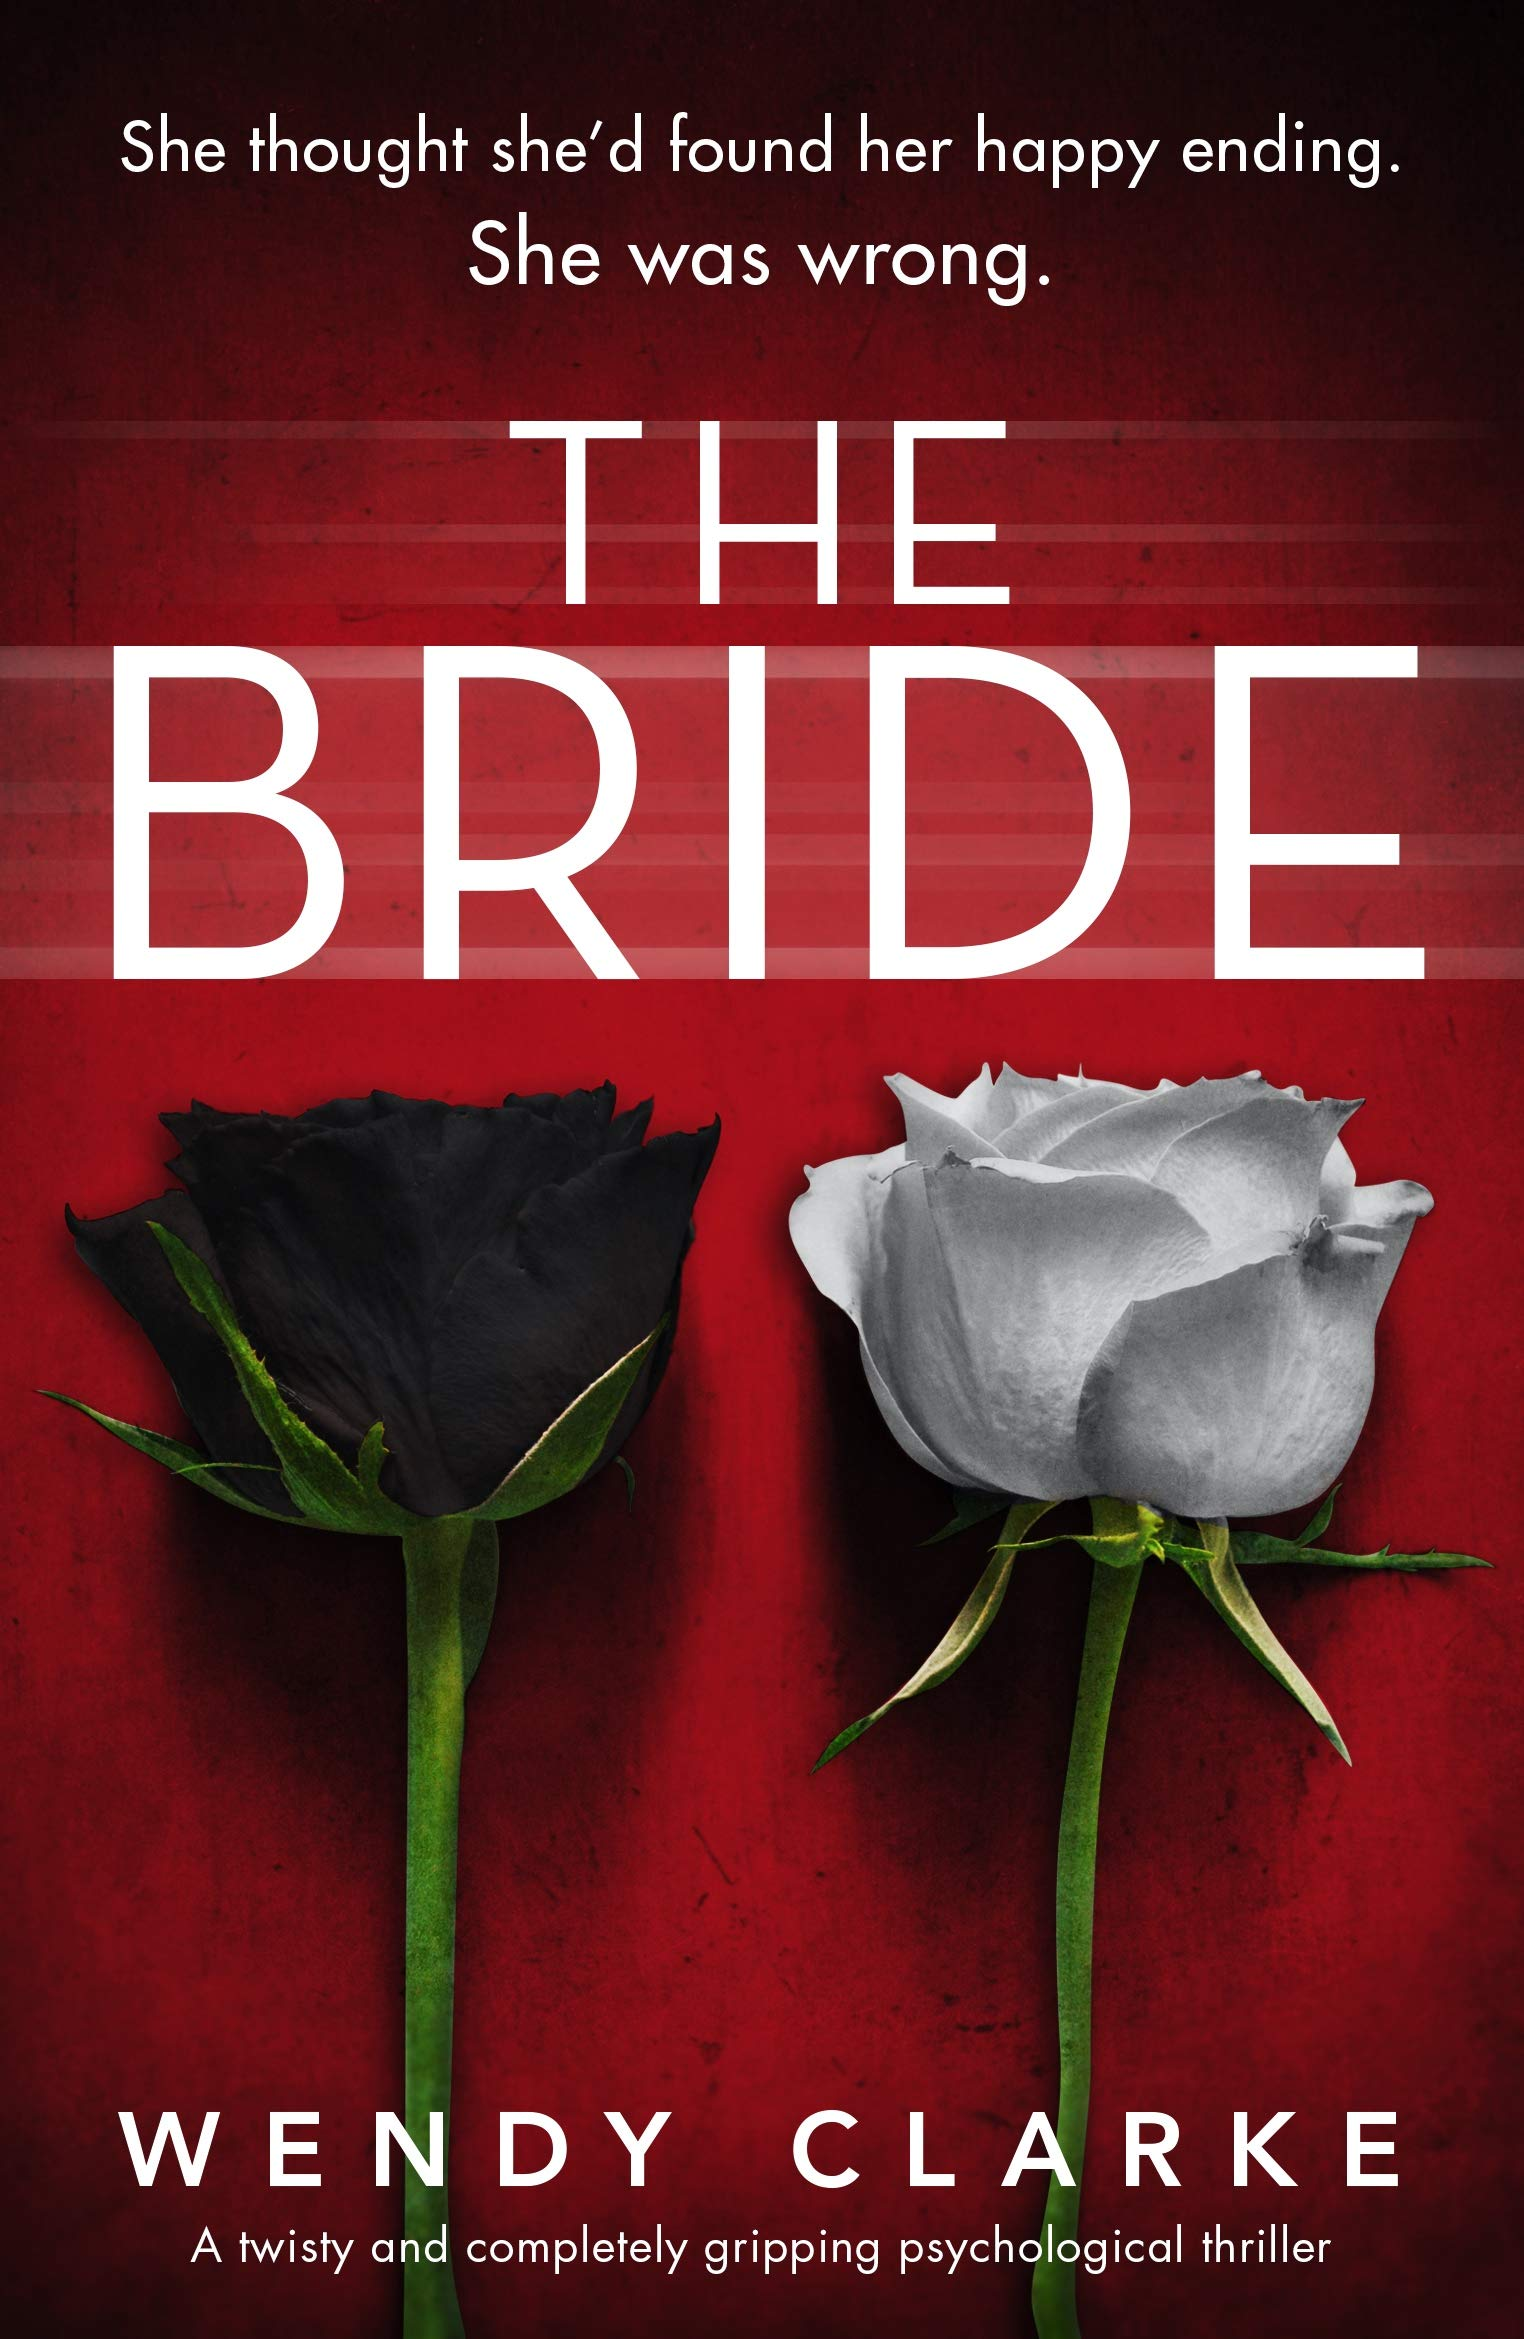 The Bride: A twisty and completely gripping psychological thriller